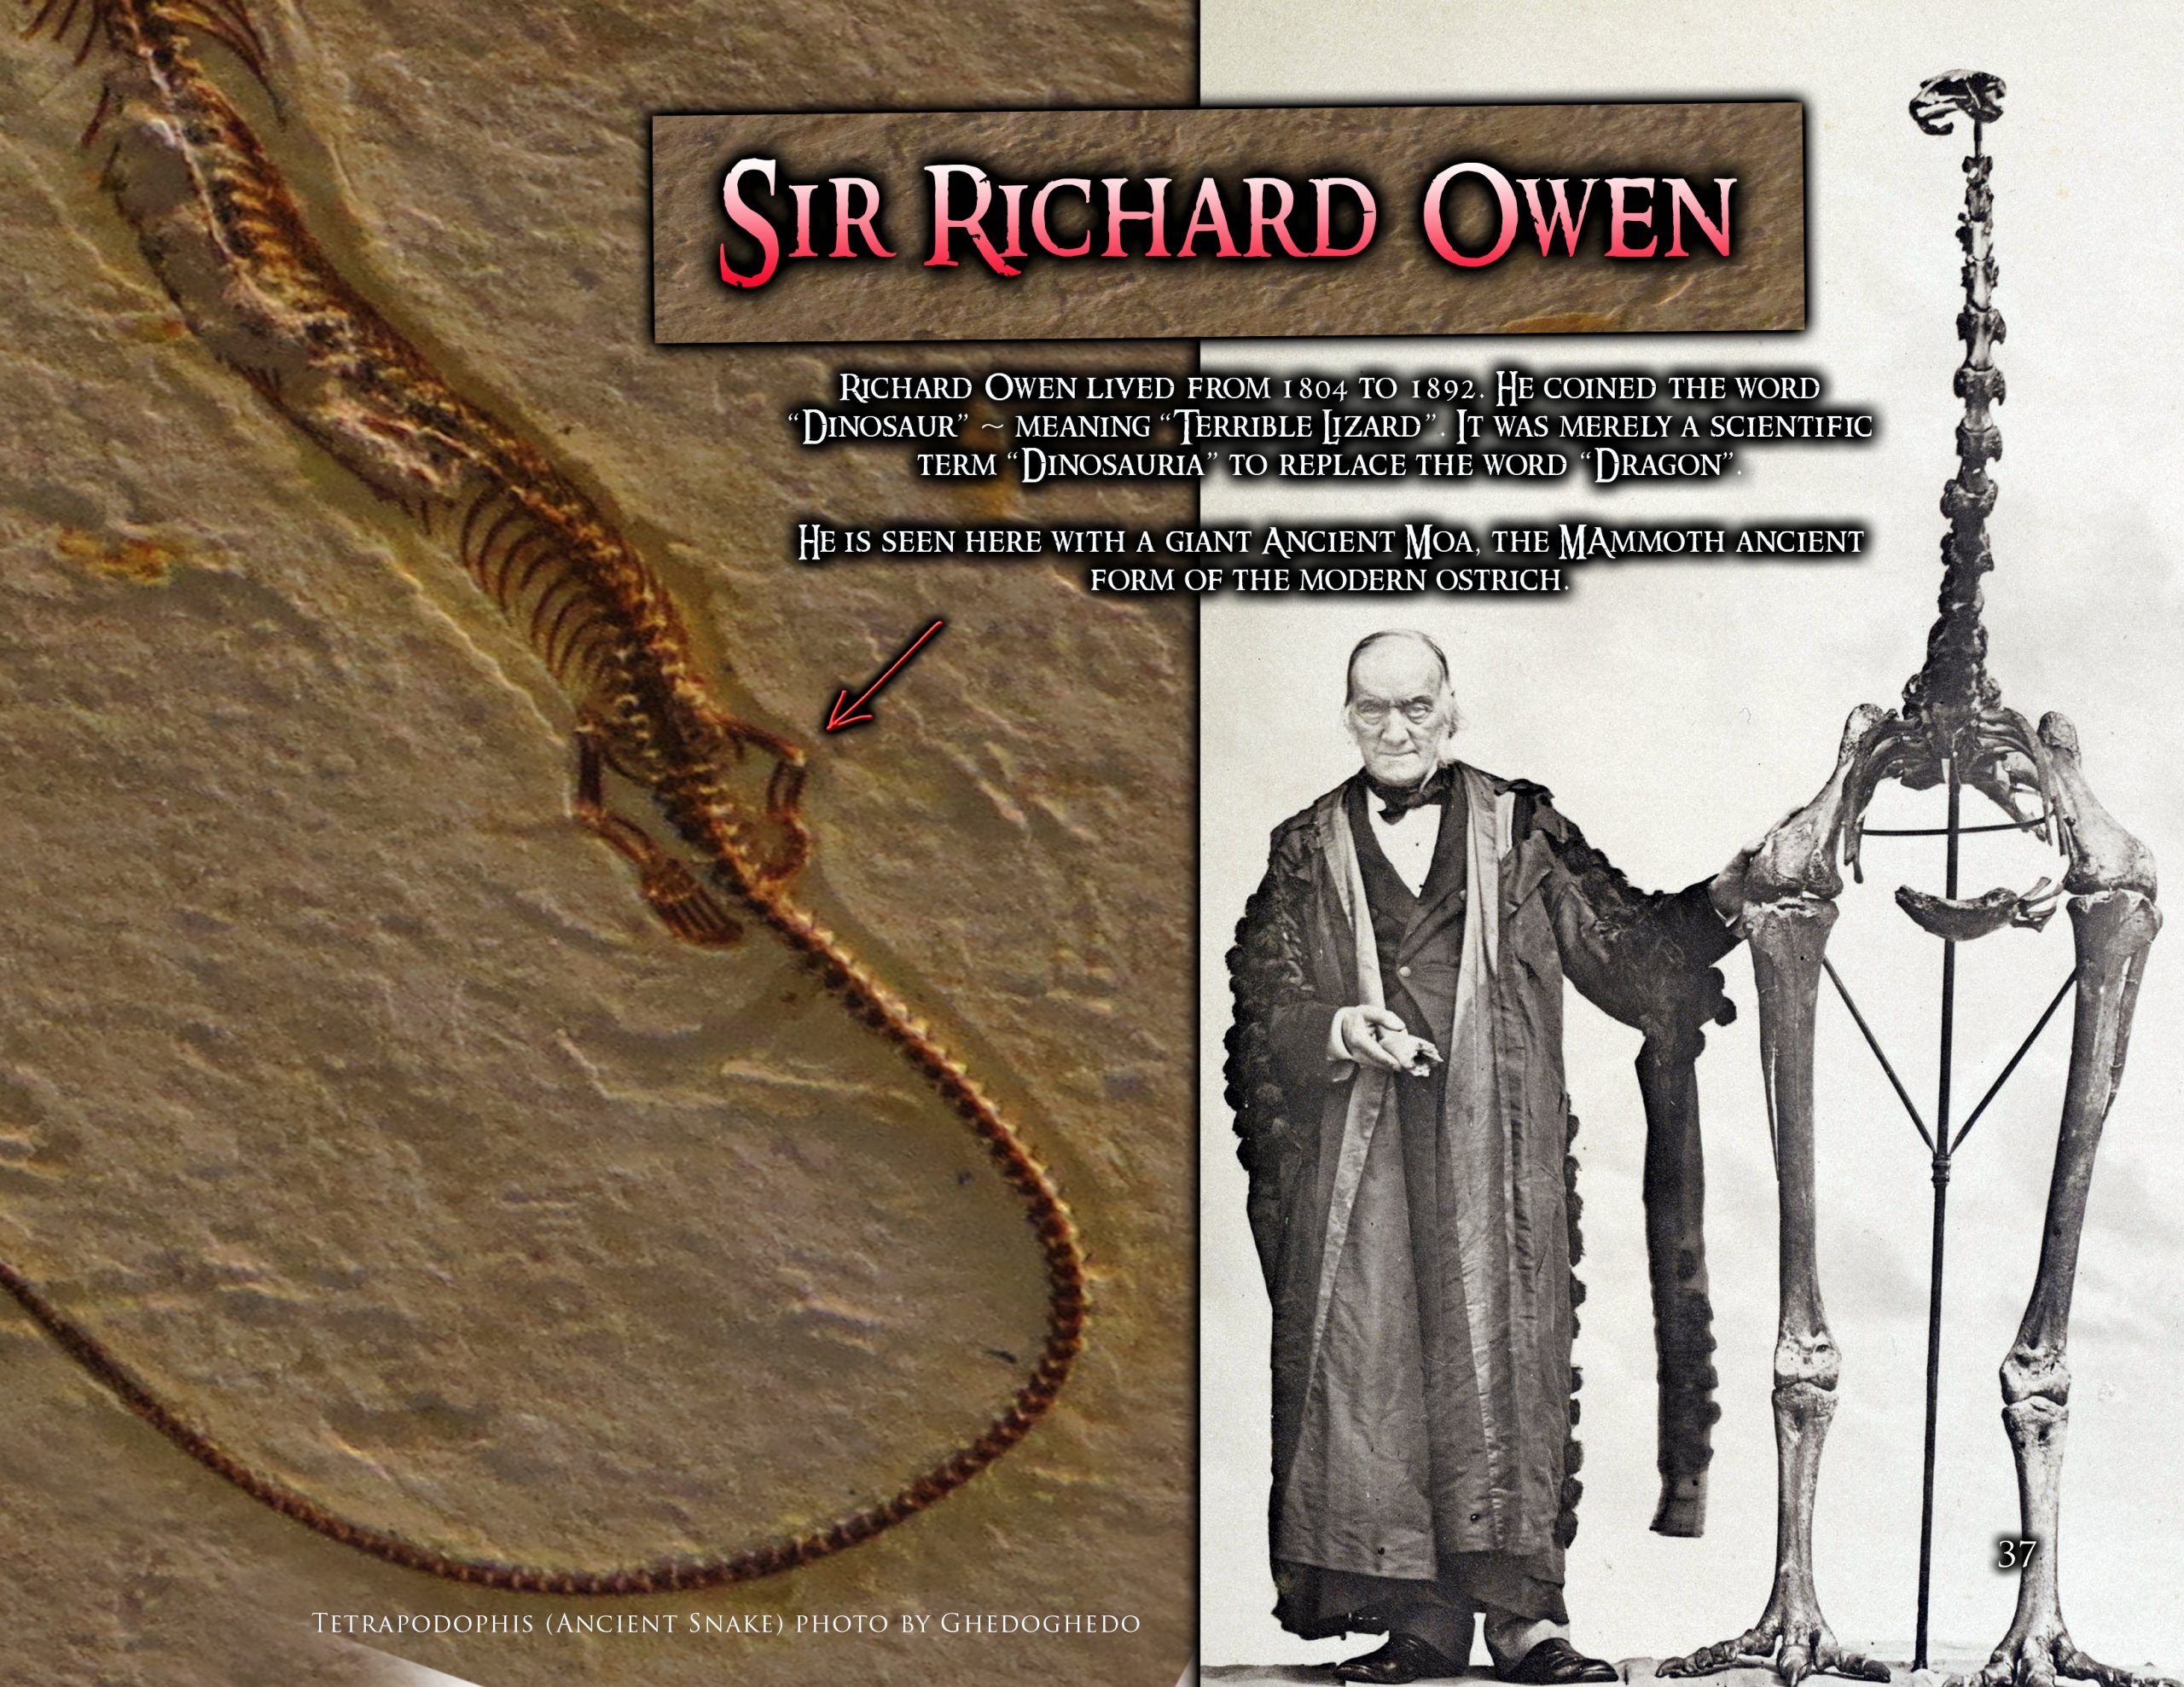 Sir Richard Owen with a Moa (Giant Ancient Ostrich) and an ancient snake with legs